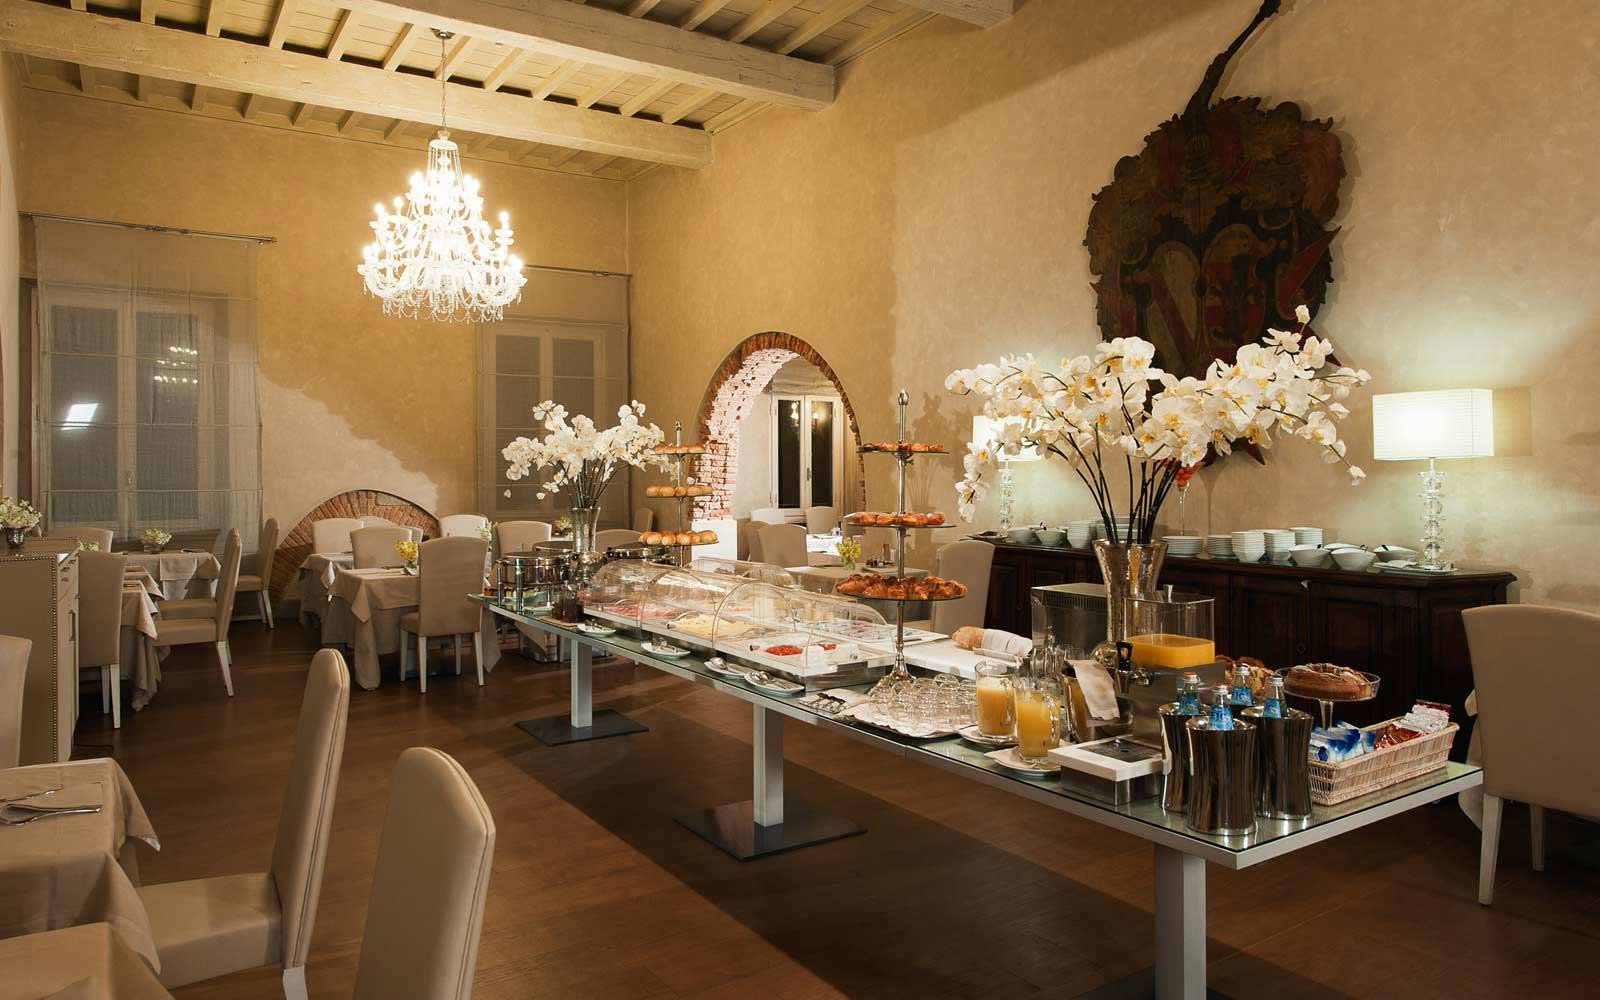 Breakfast buffet at Hotel Brunelleschi